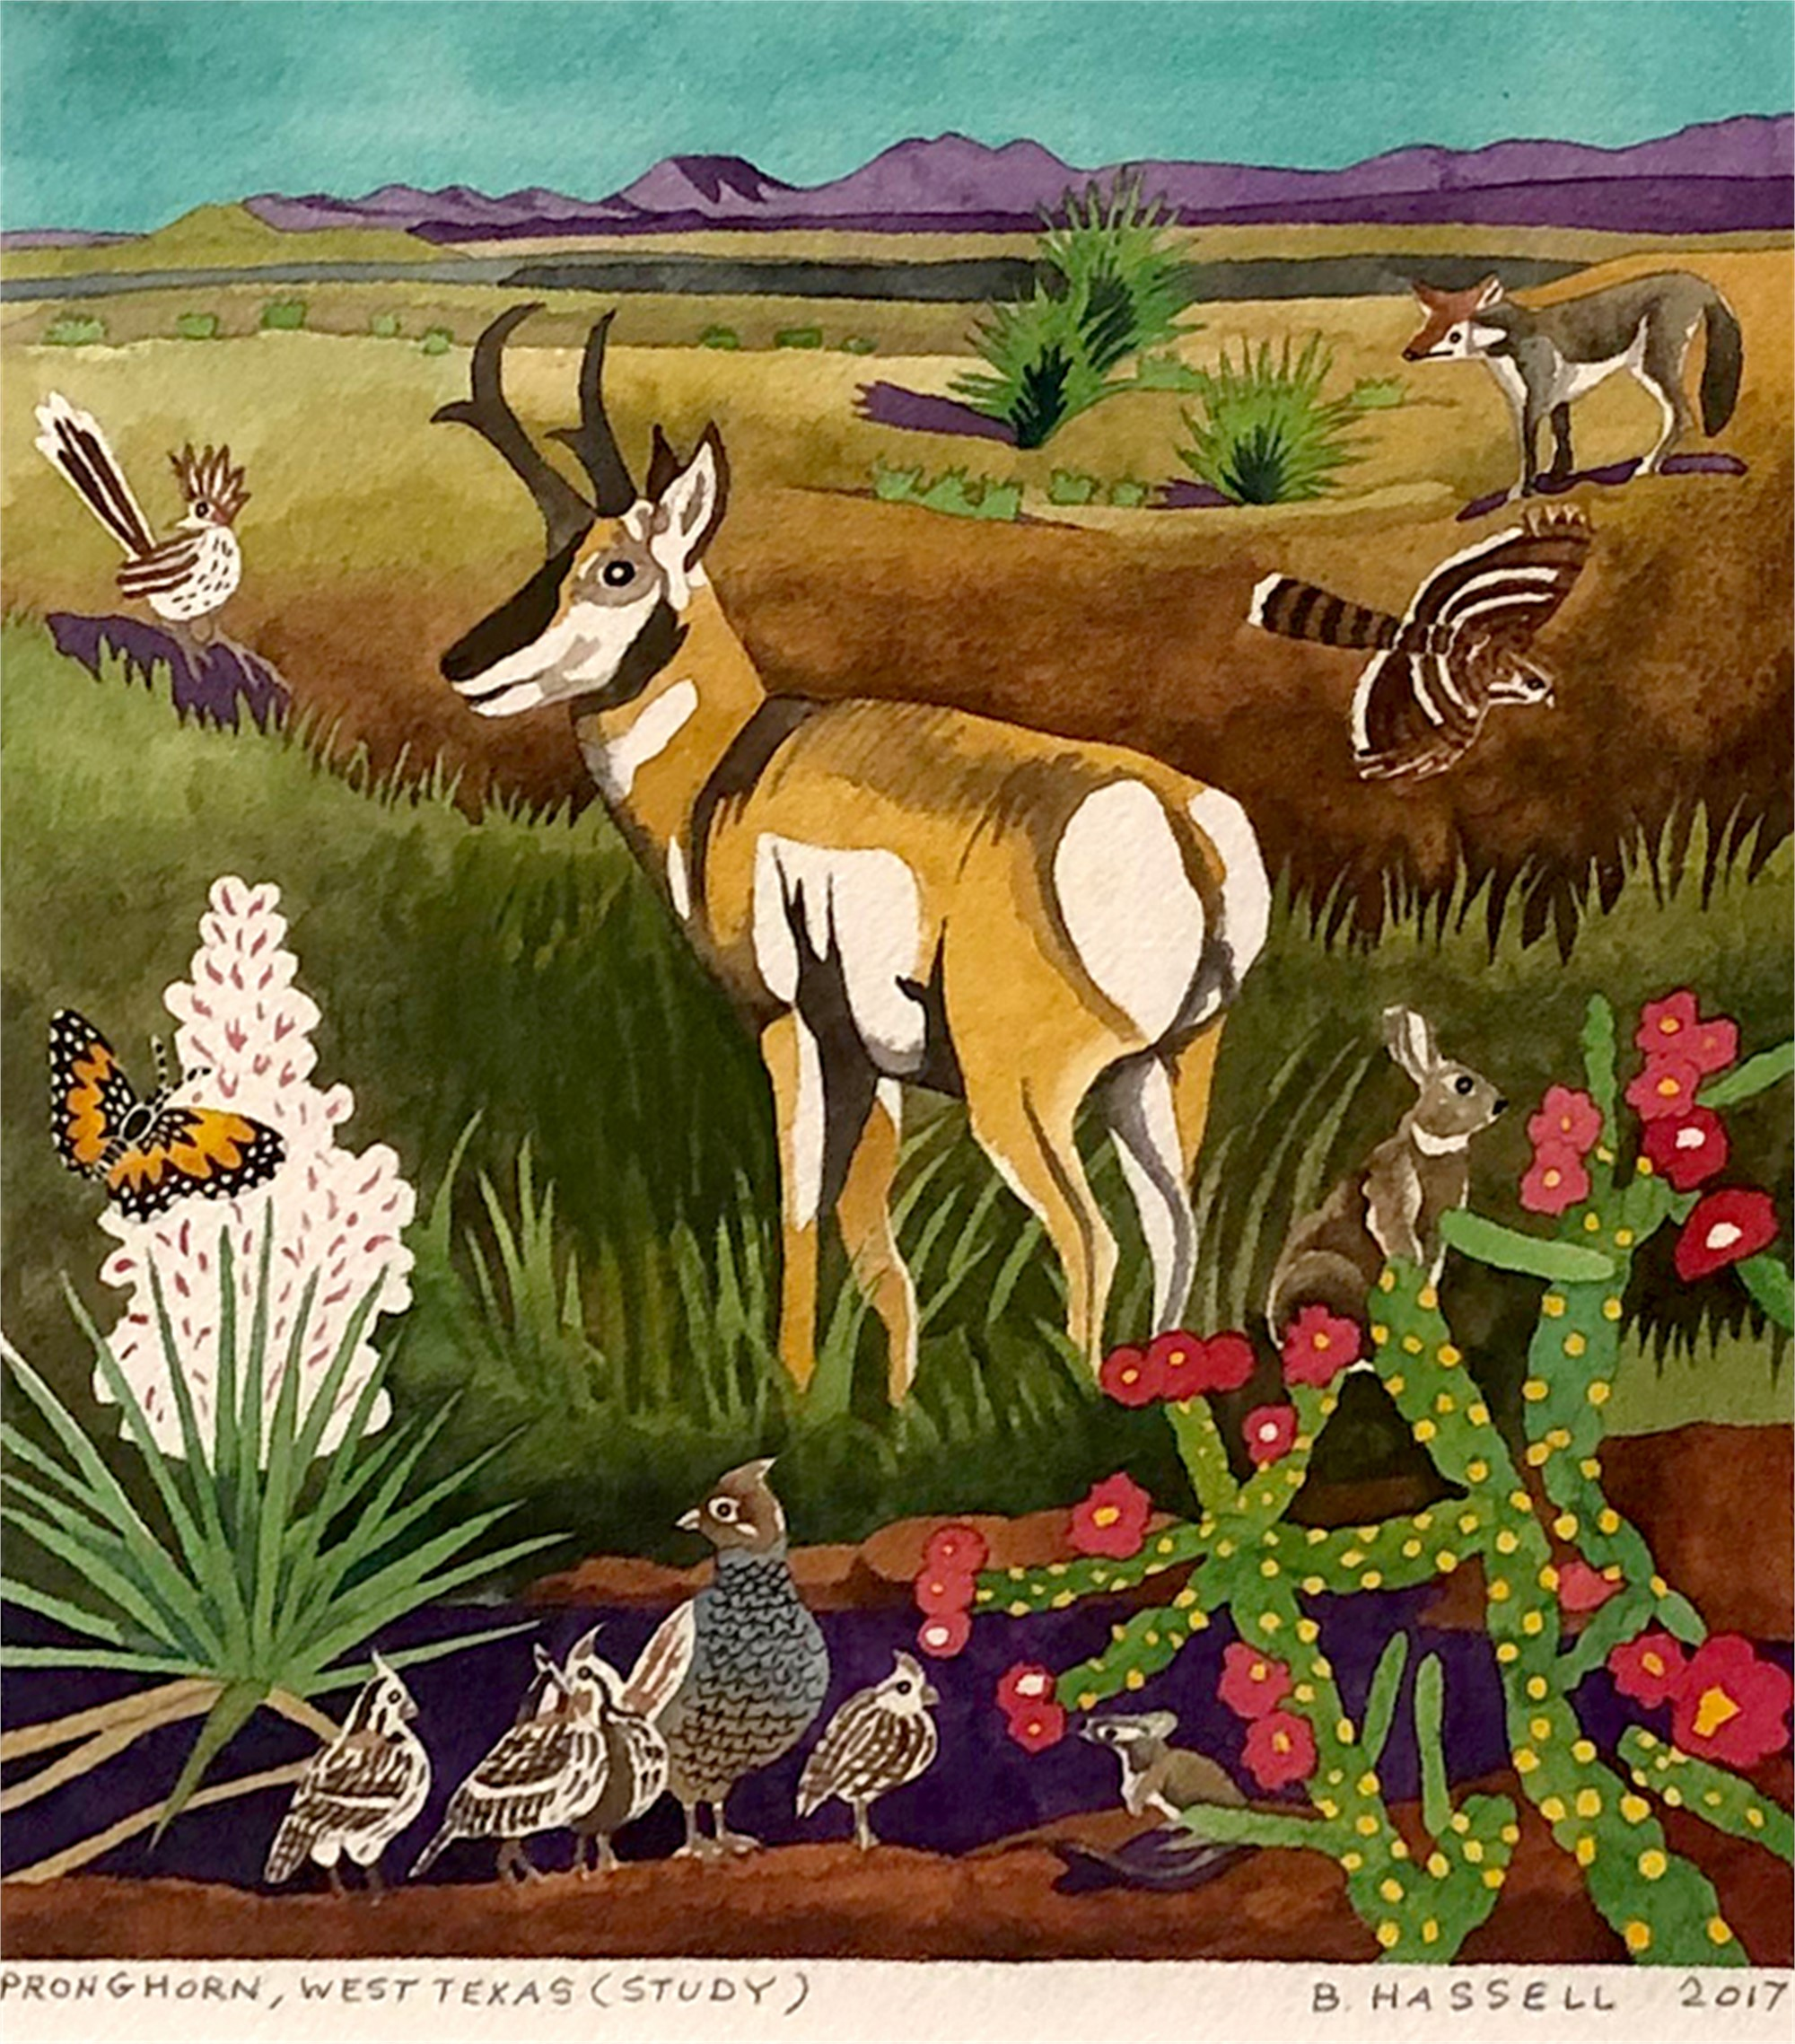 Pronghorn, West Texas (Study) by Billy Hassell